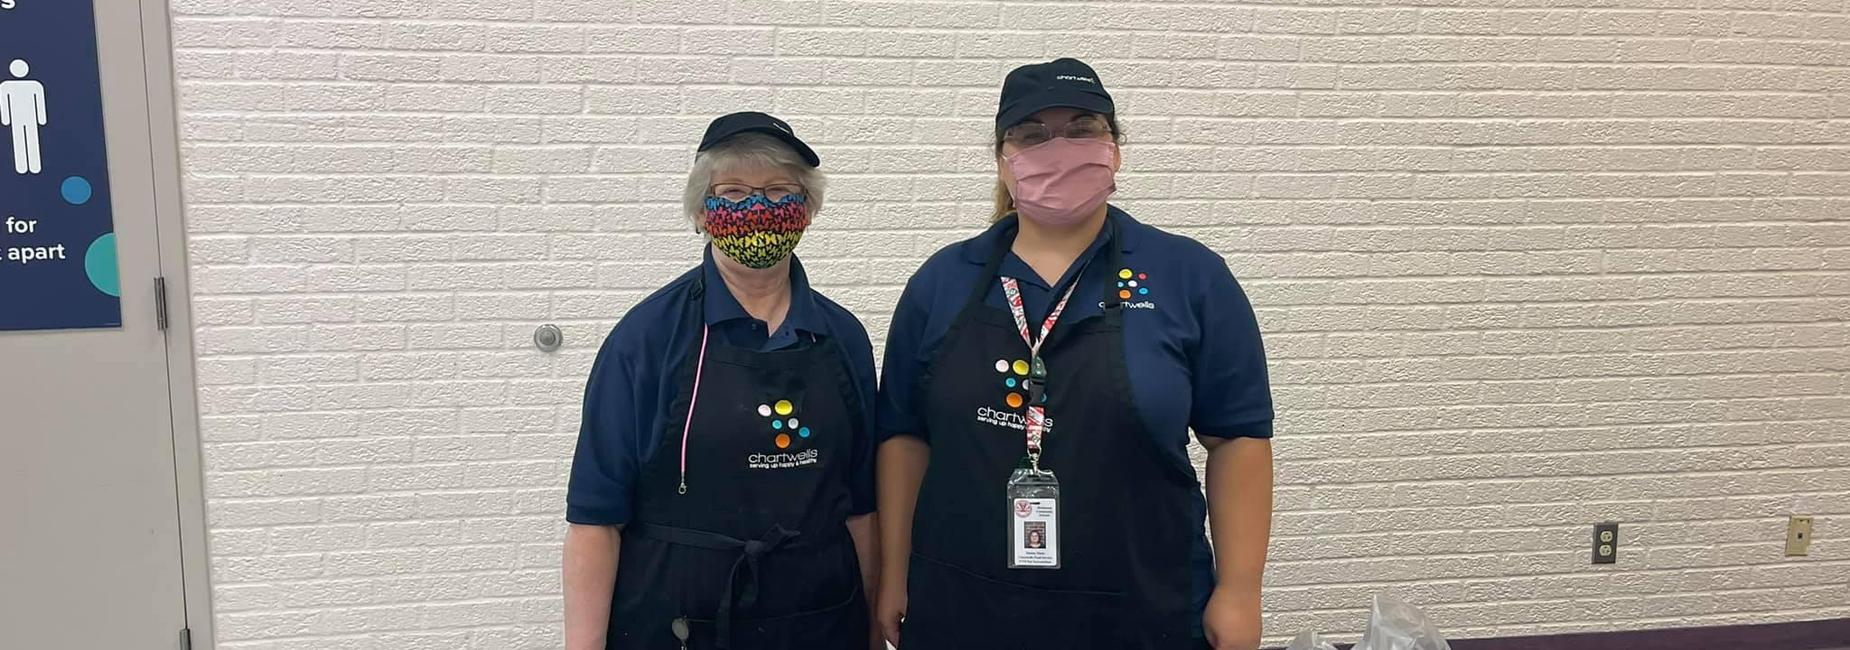 Vaile Food Service Workers